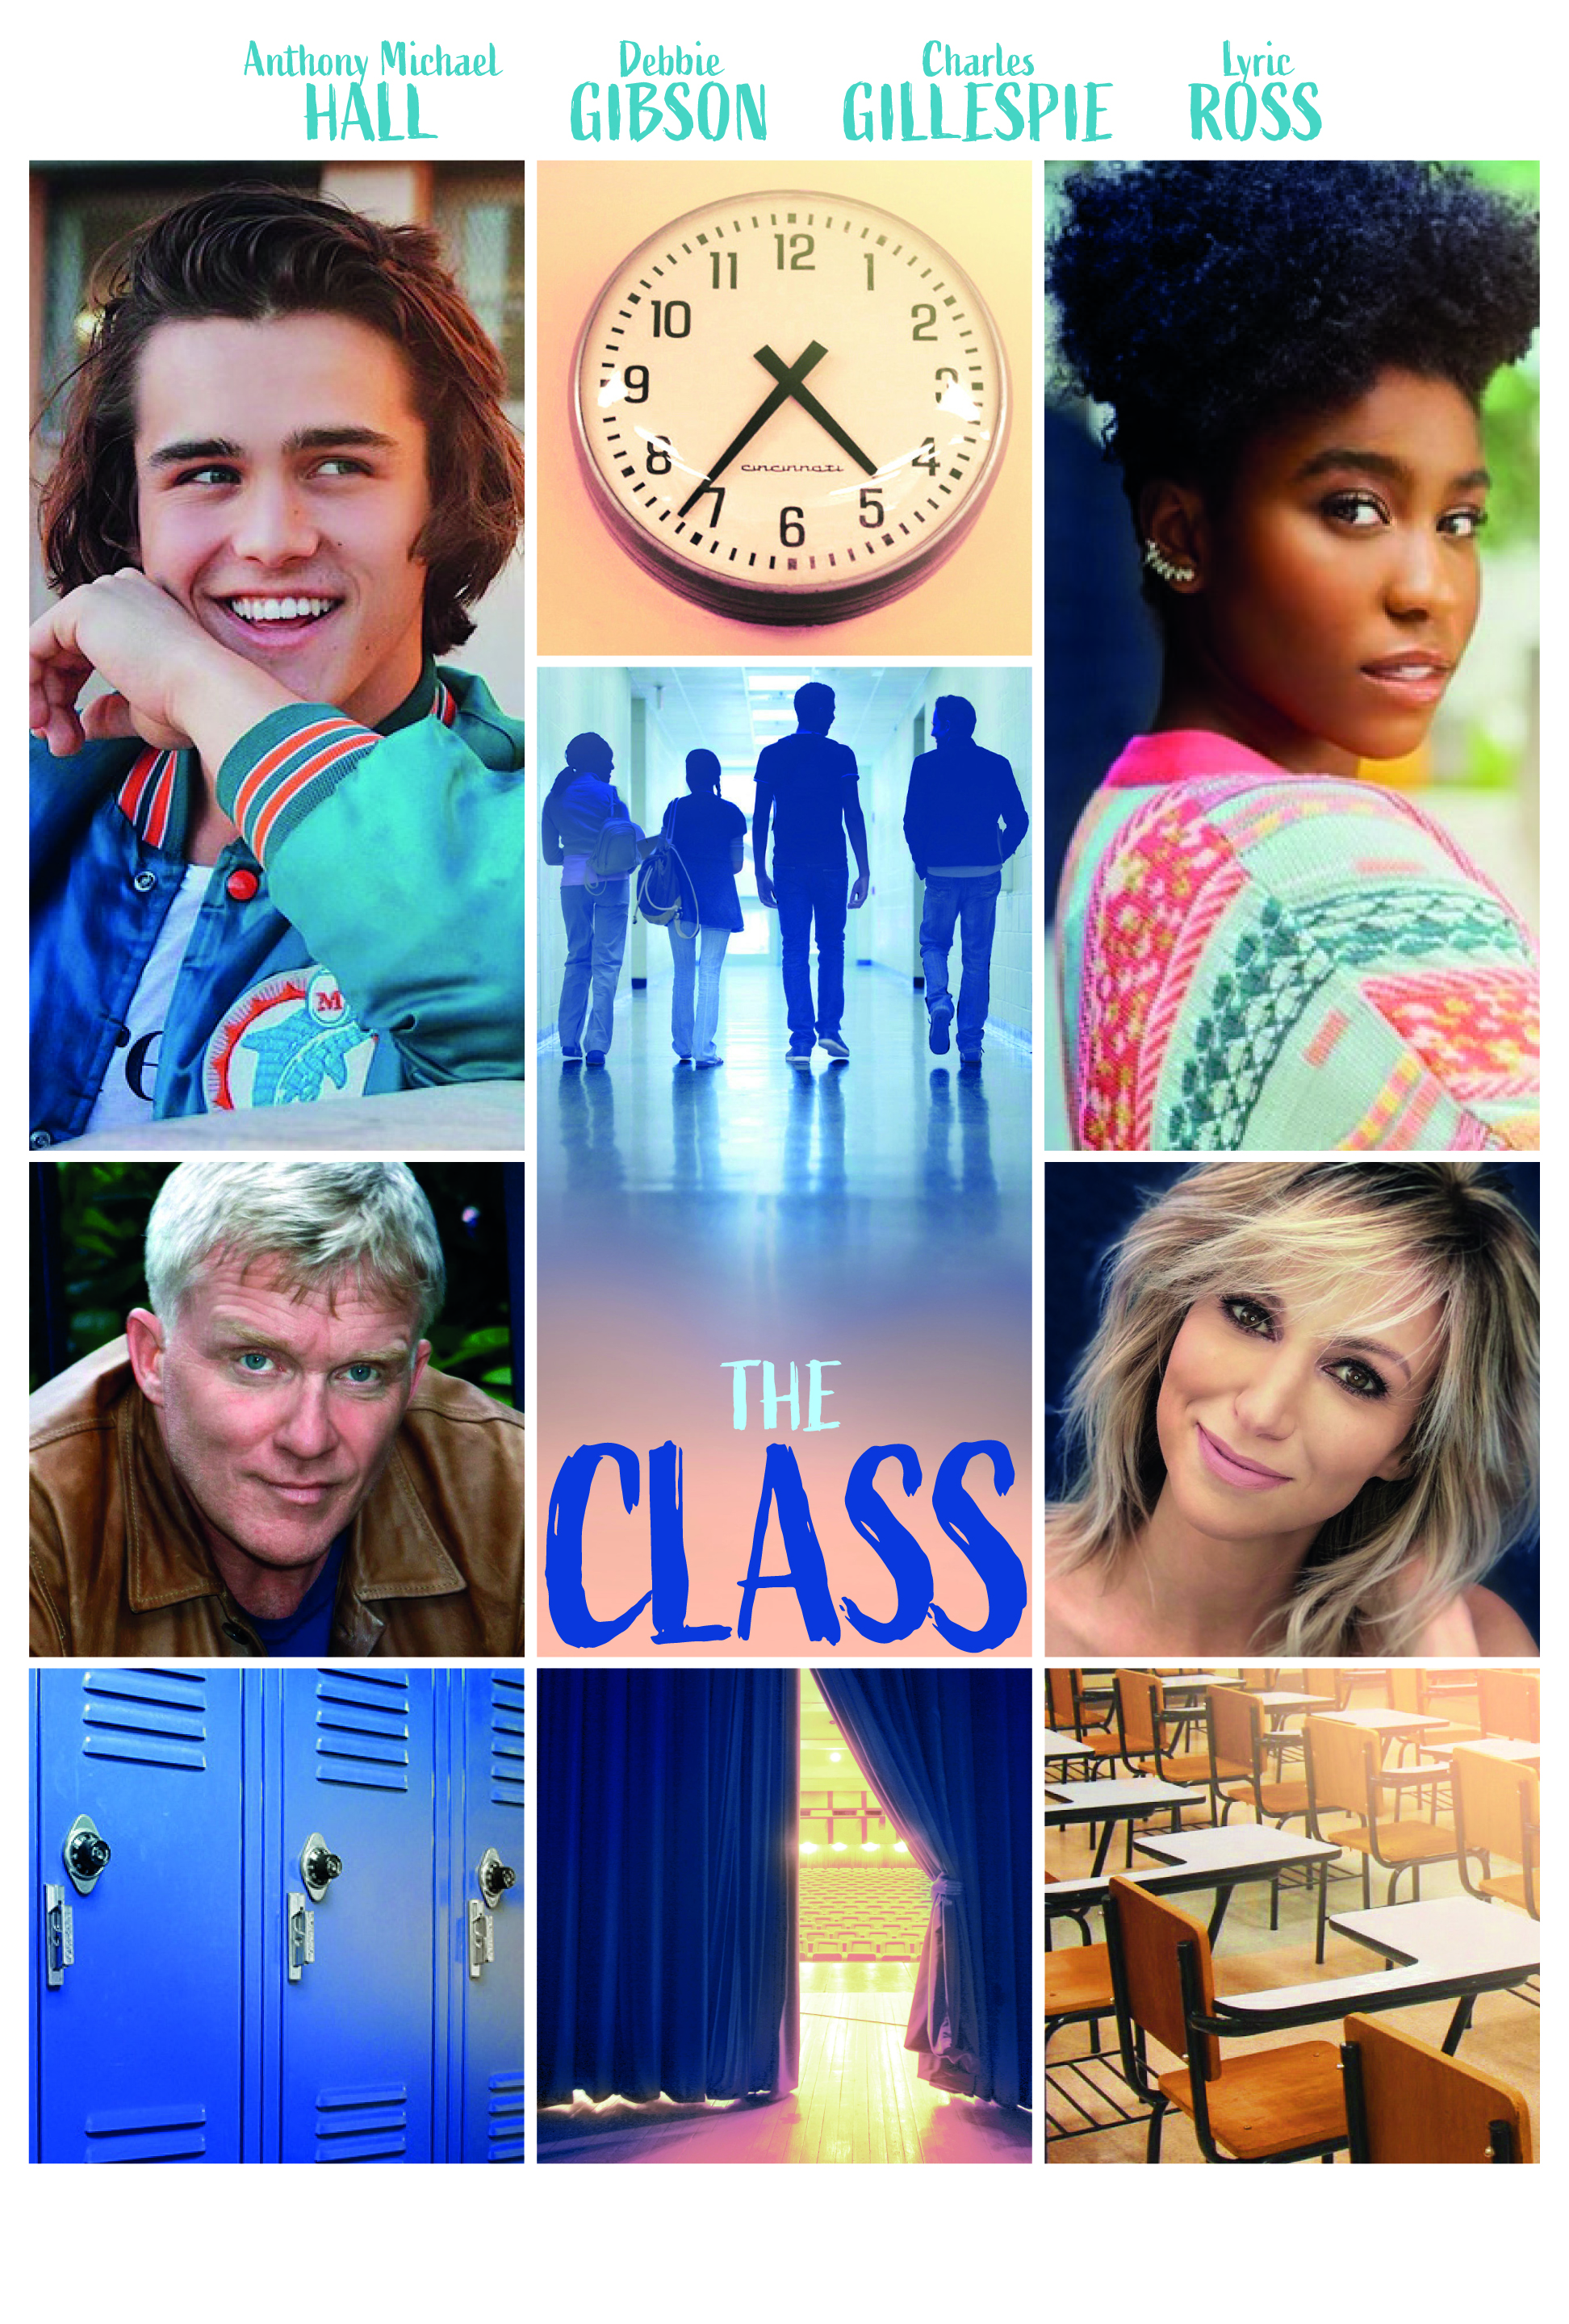 Anthony Michael Hall, Debbie Gibson, Charlie Gillespie, and Lyric Ross in The Class